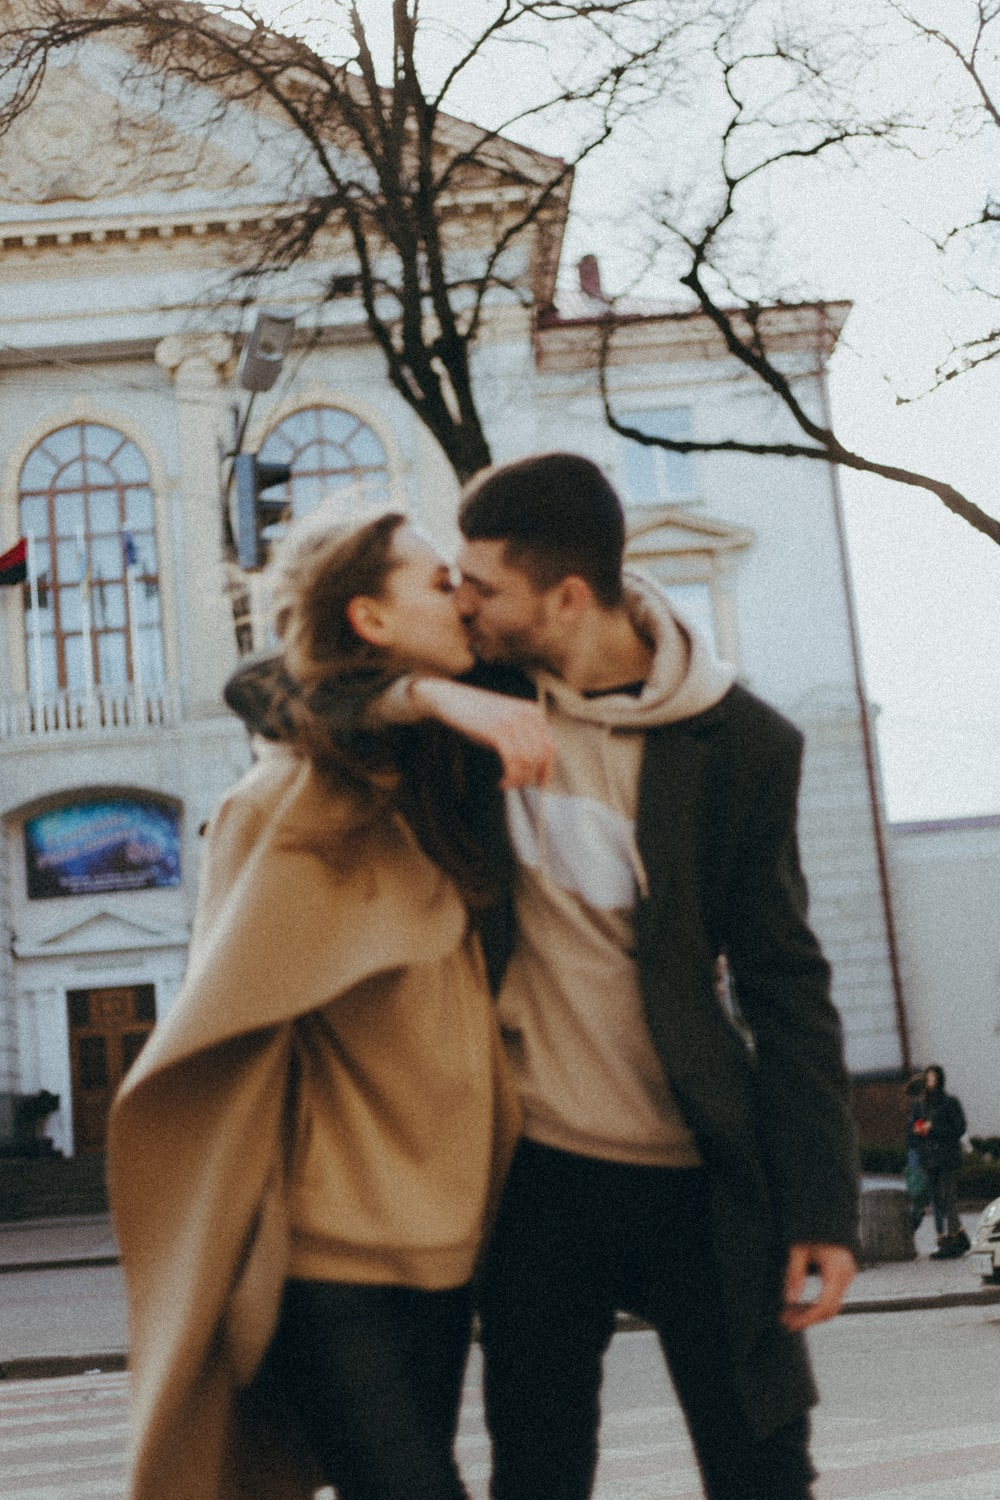 man in black suit kissing woman in brown coat